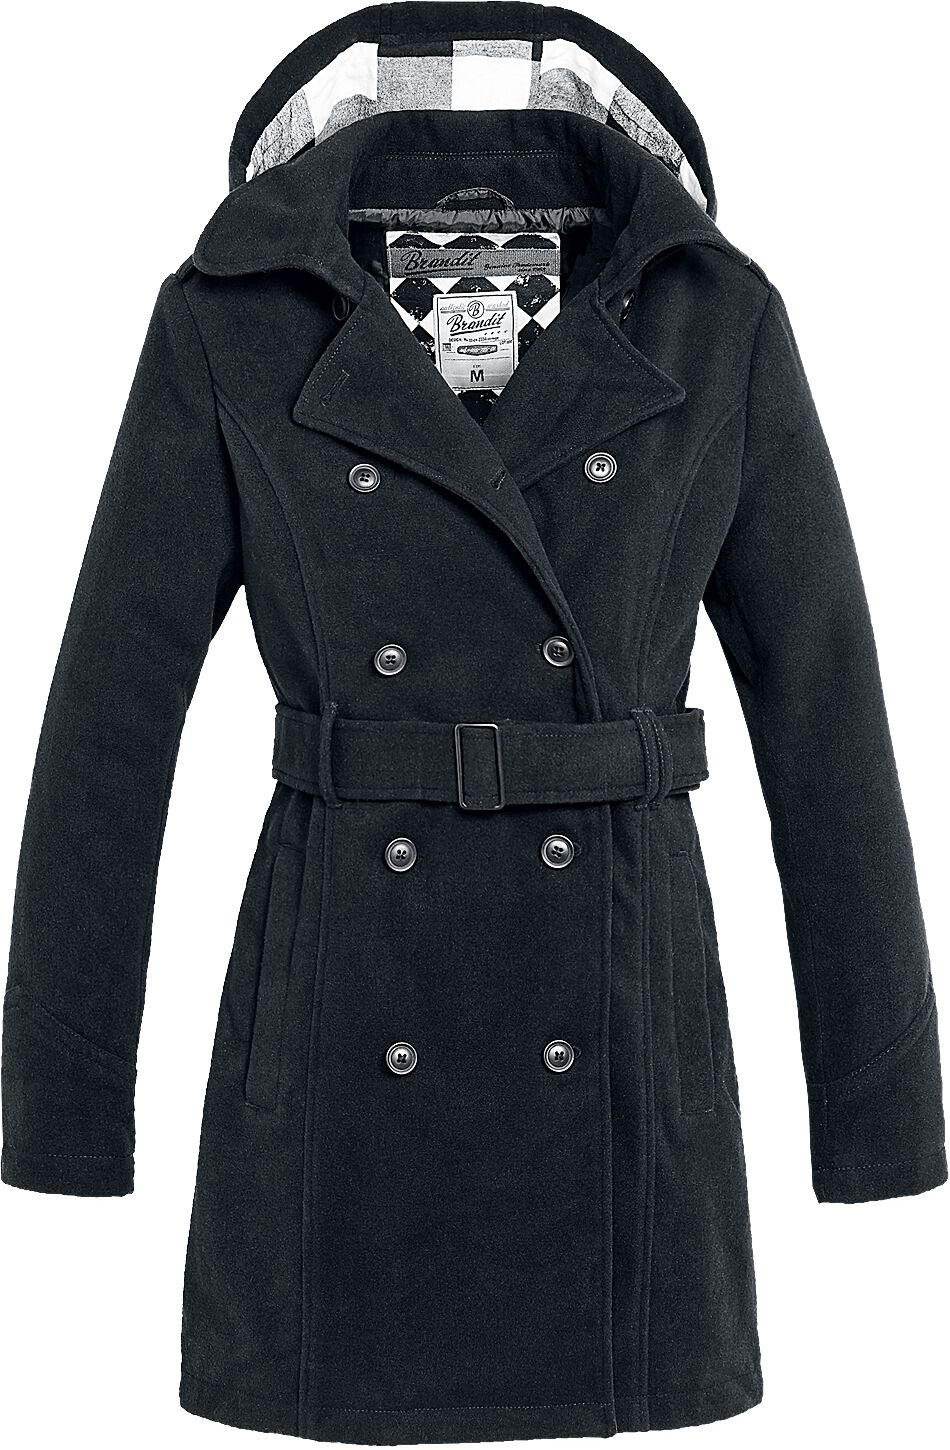 Image of   Brandit Girls Coat Long Girlie frakke sort